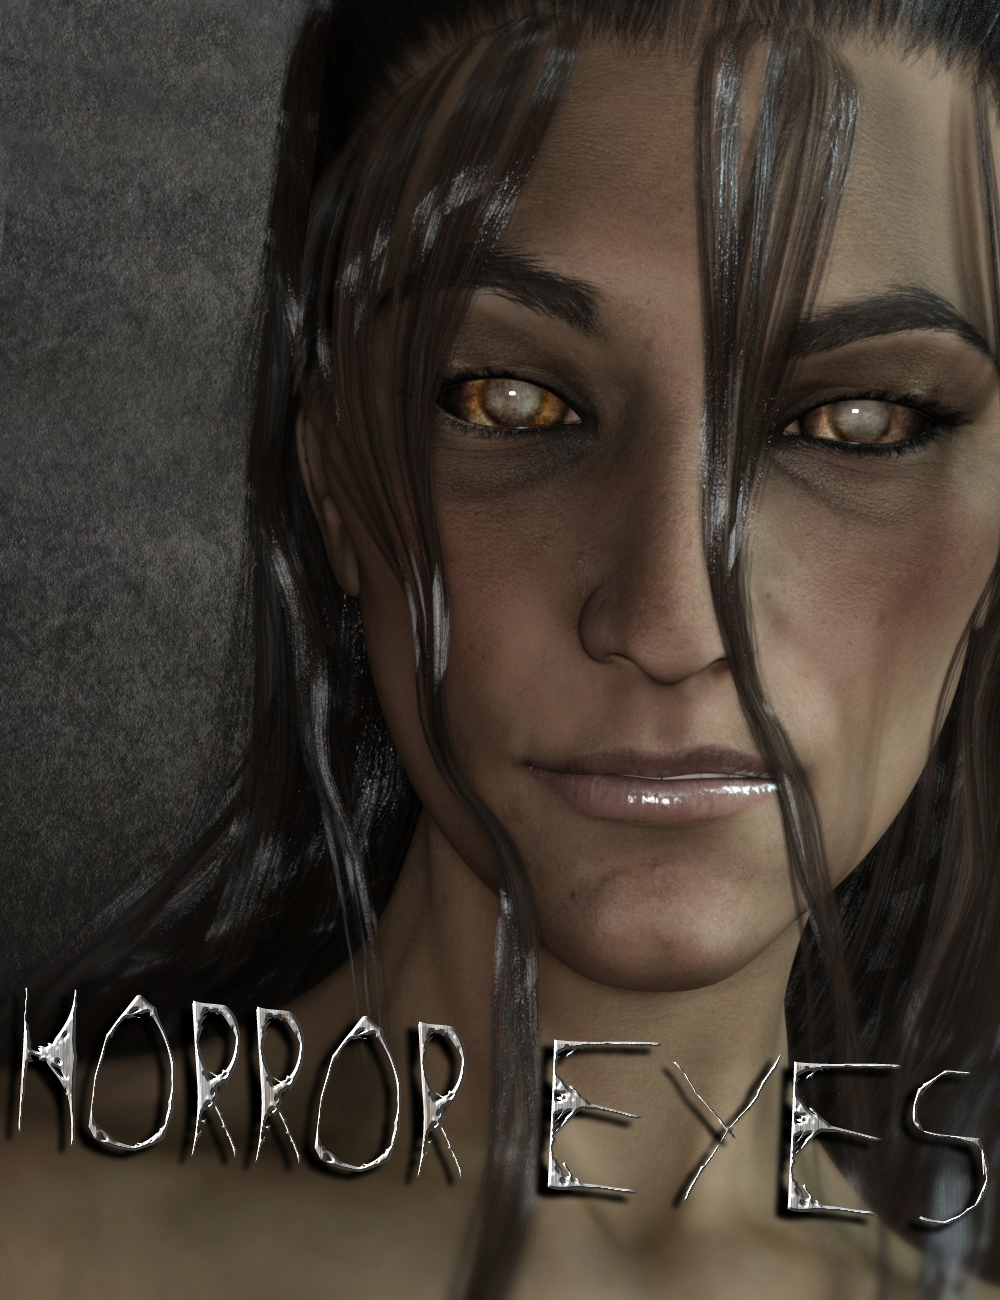 Horror Eyes for Genesis 8 Male and Female by: SR3, 3D Models by Daz 3D